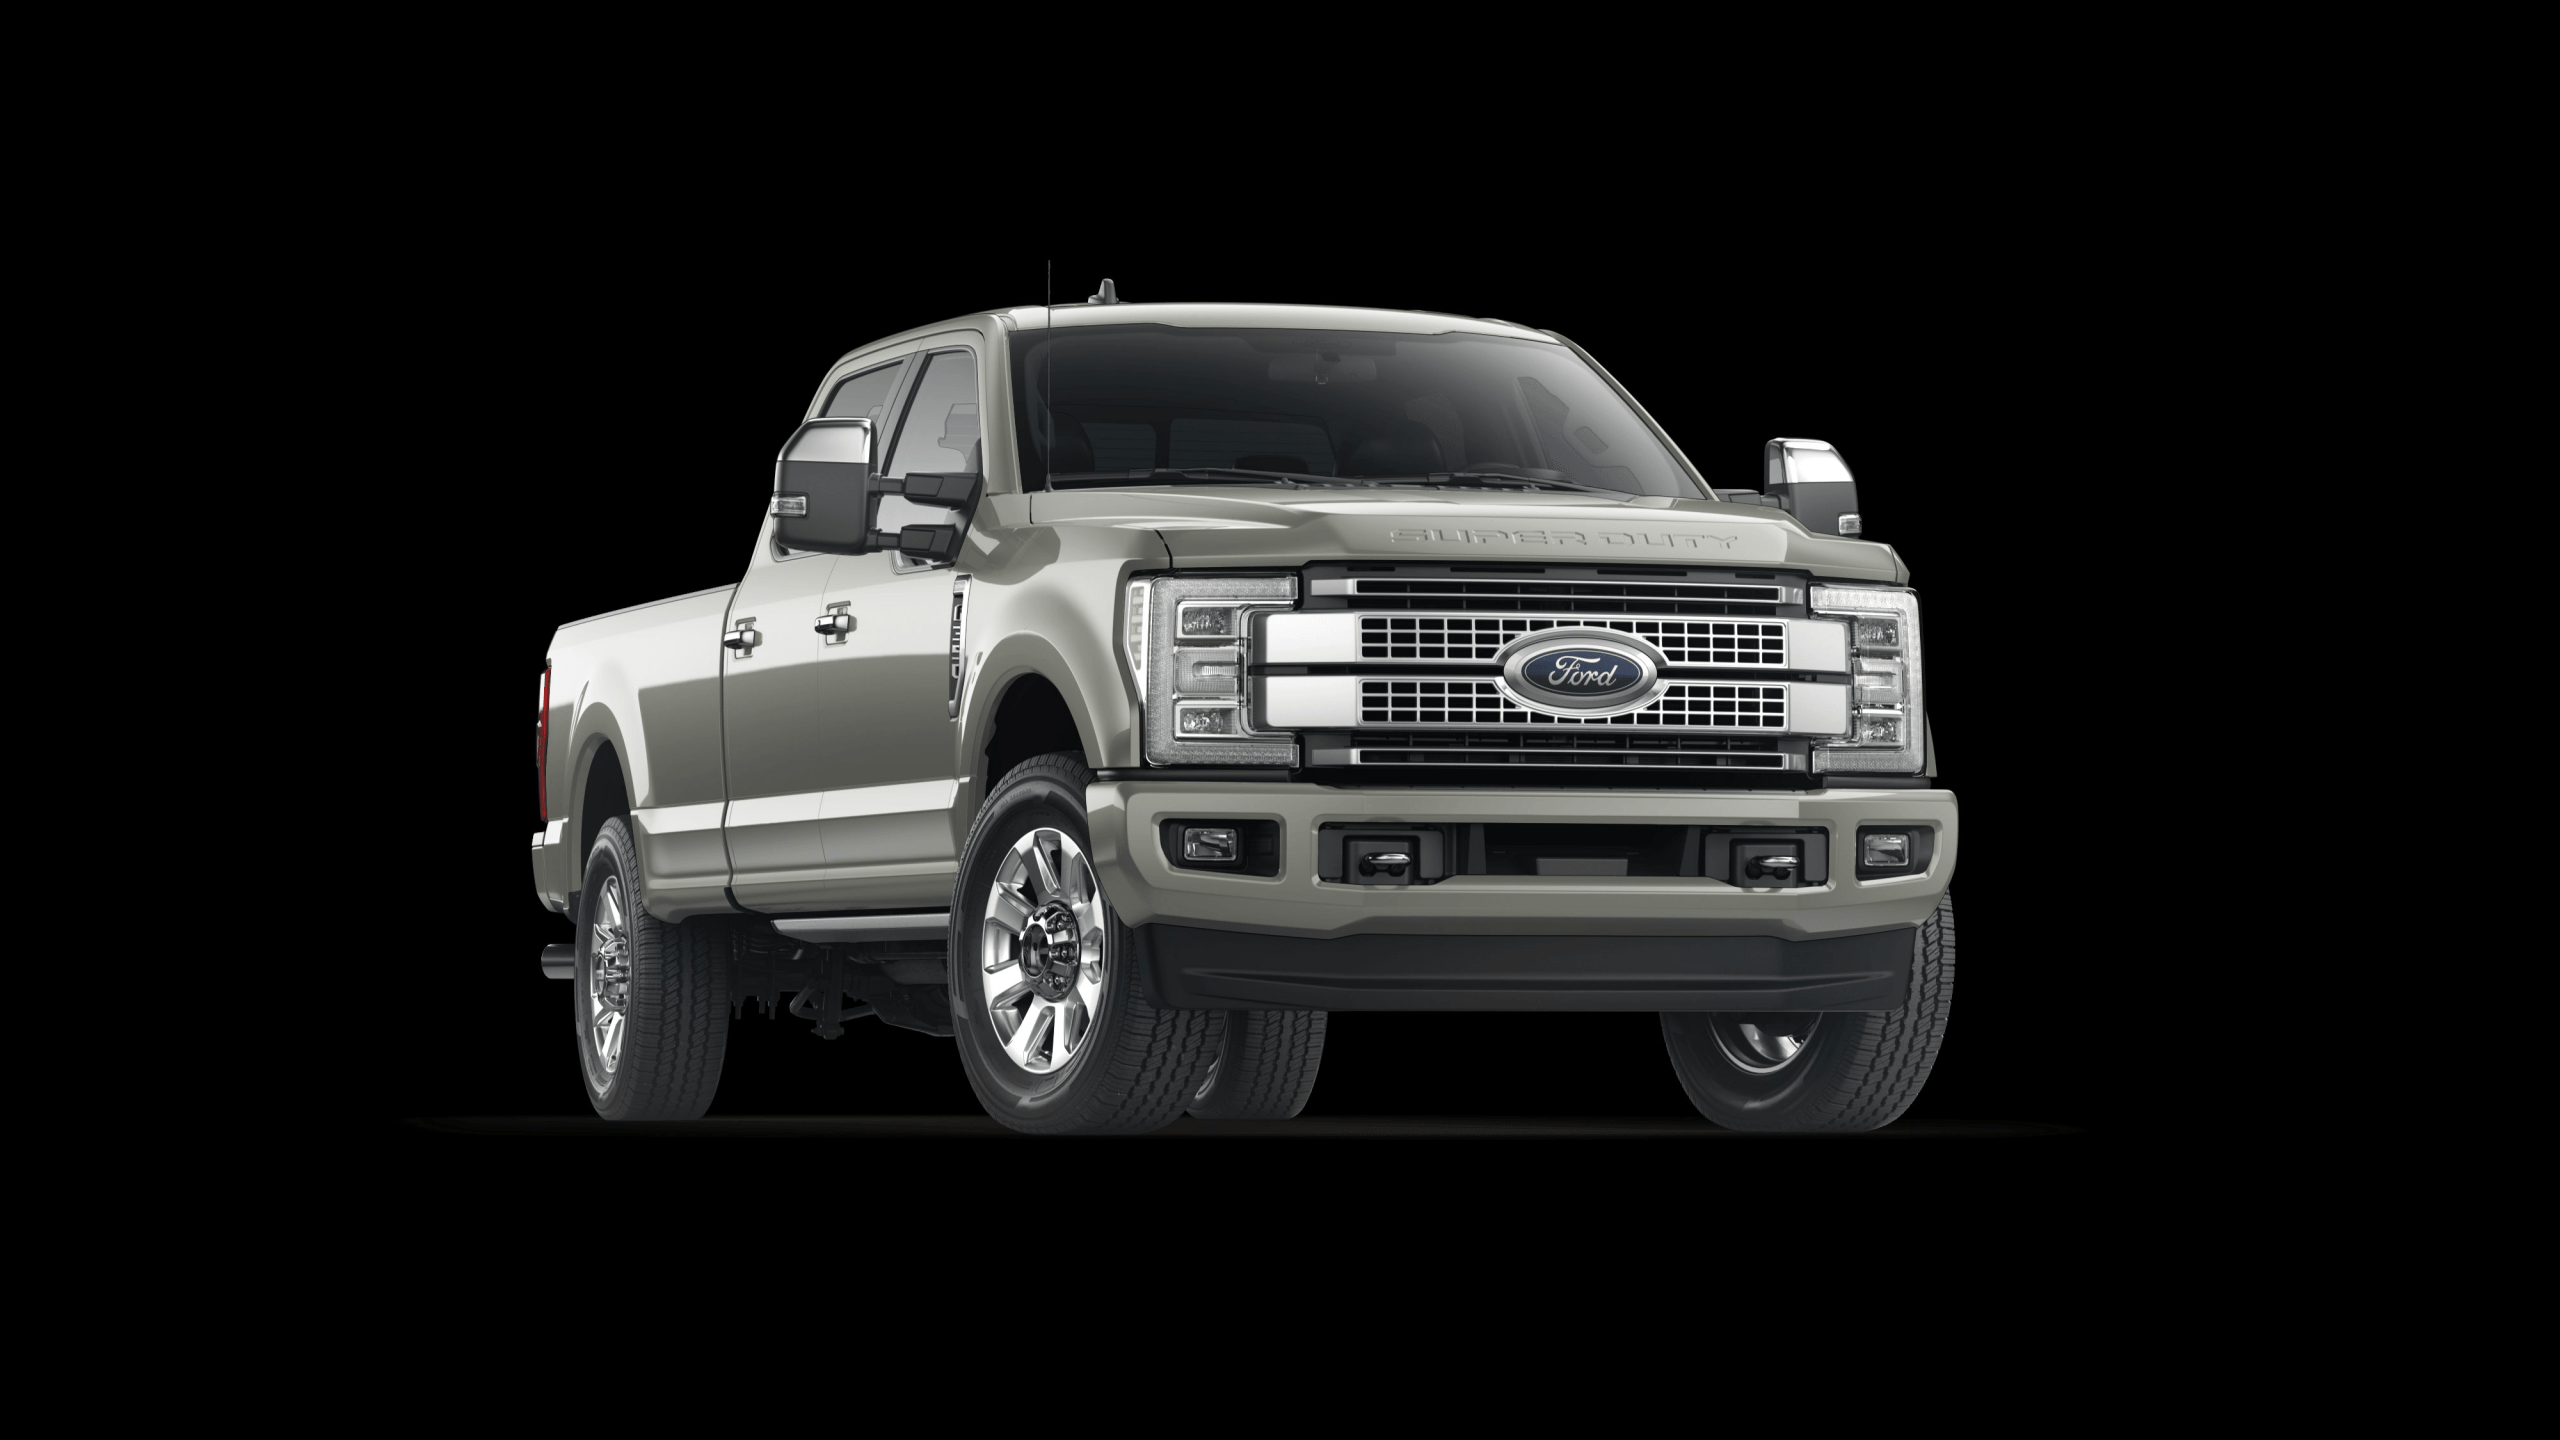 2021 ford F250 Diesel Rumored Announced Model in 2020